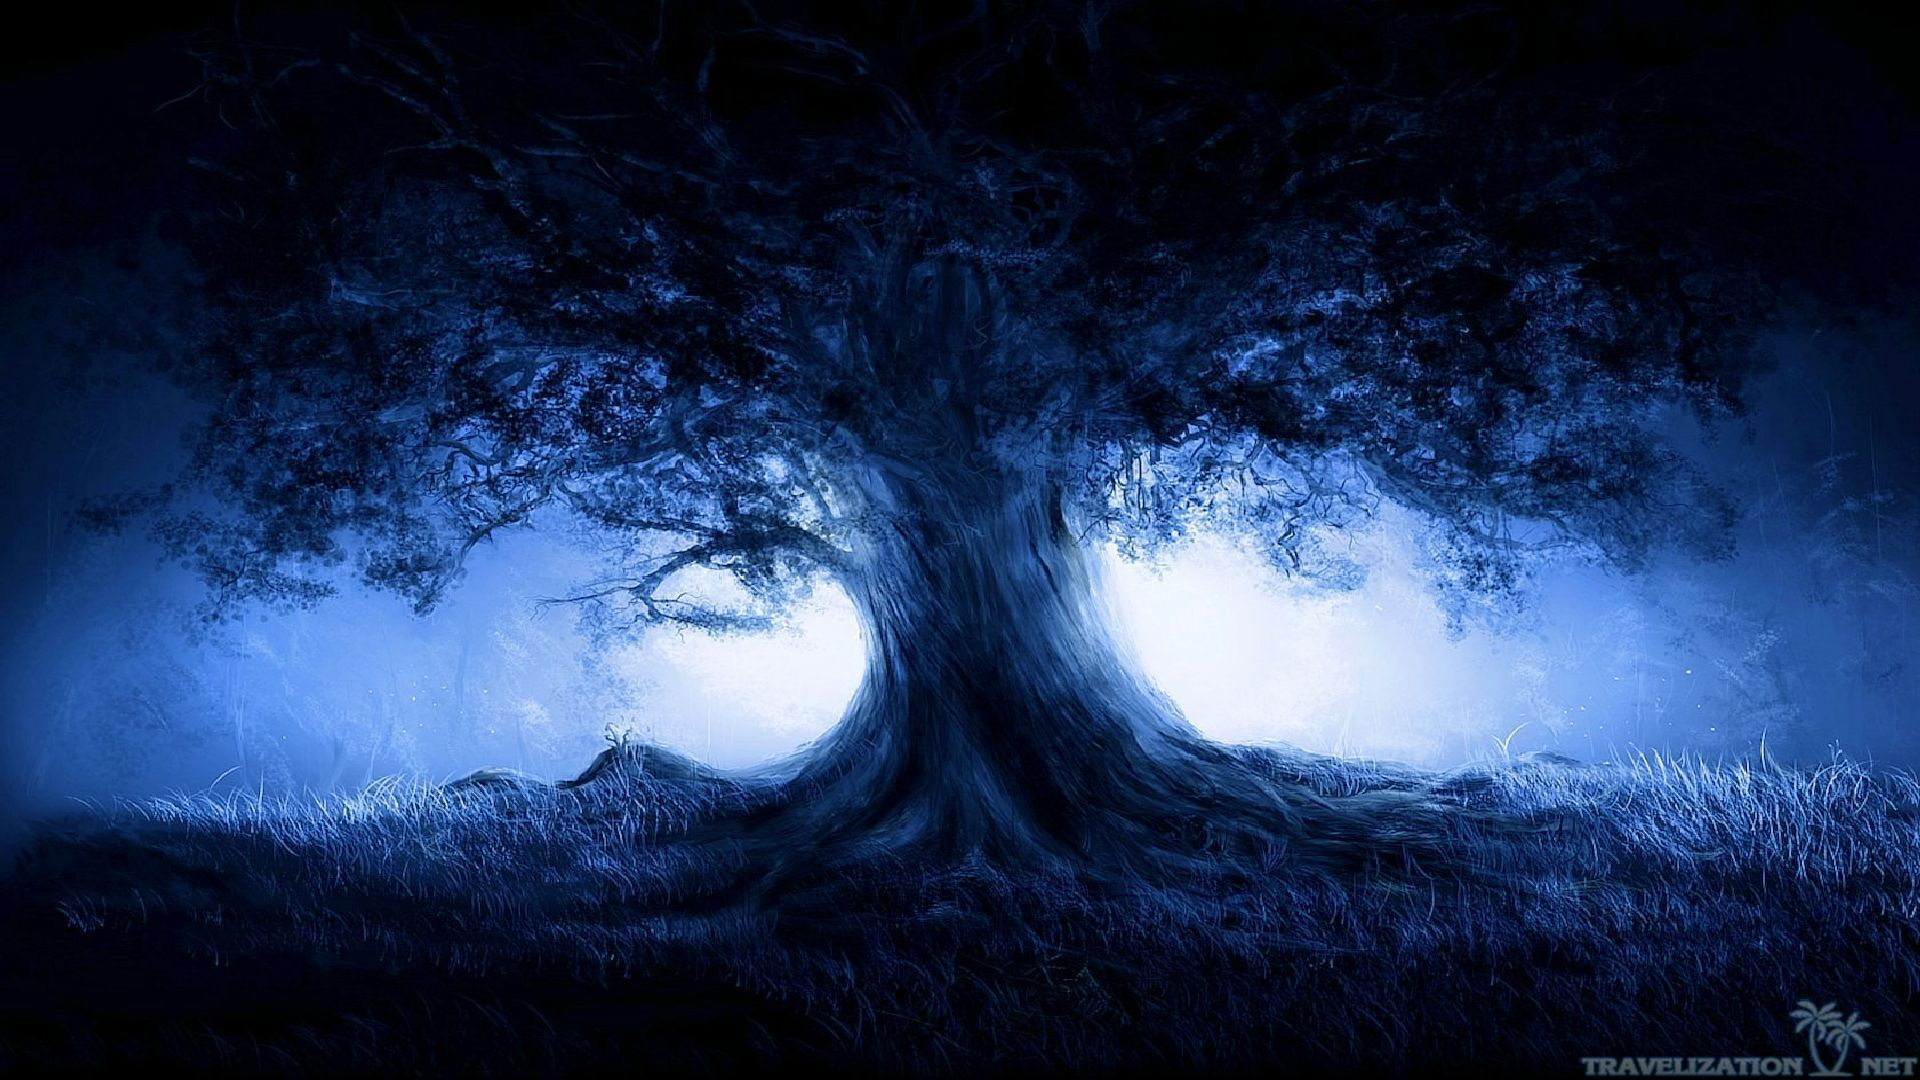 Dark Nature Wallpapers 1080p For Free Wallpaper Fantasy Landscape Dark Tree Nature Tree